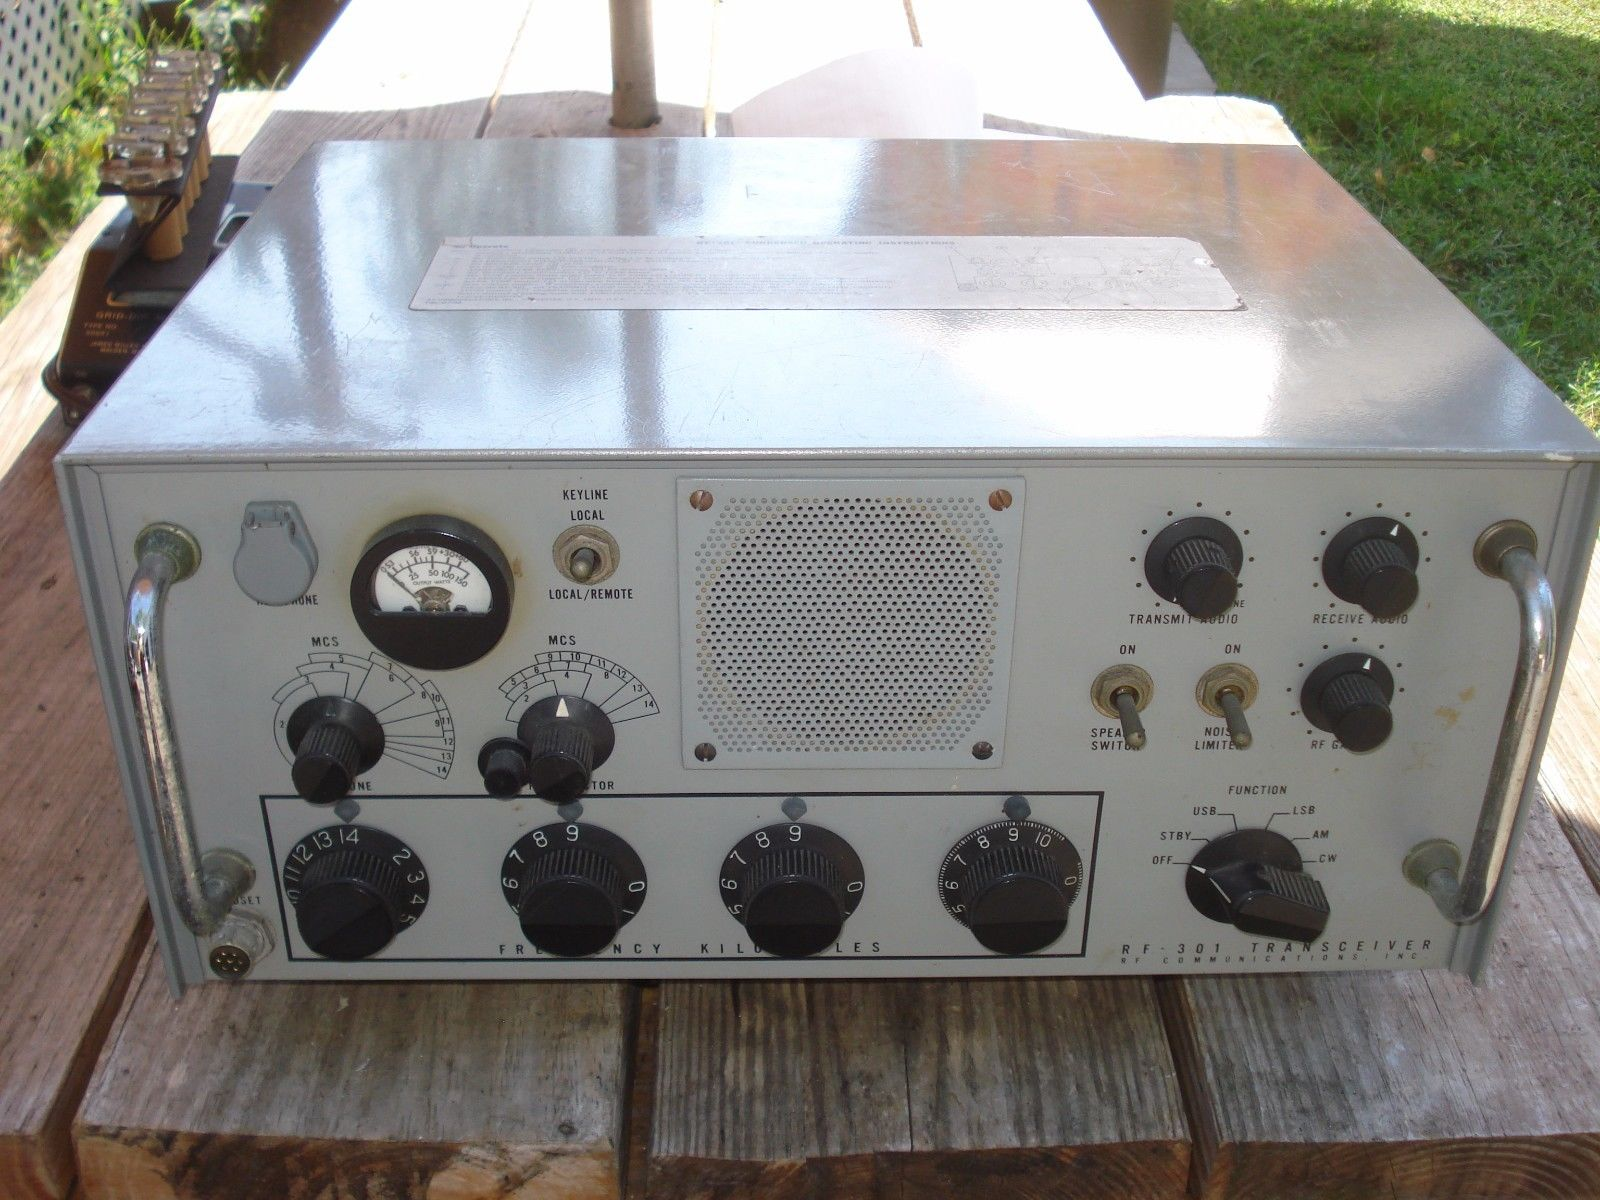 US Navy Shipboard HF Transceivers & Transmitter-Receivers